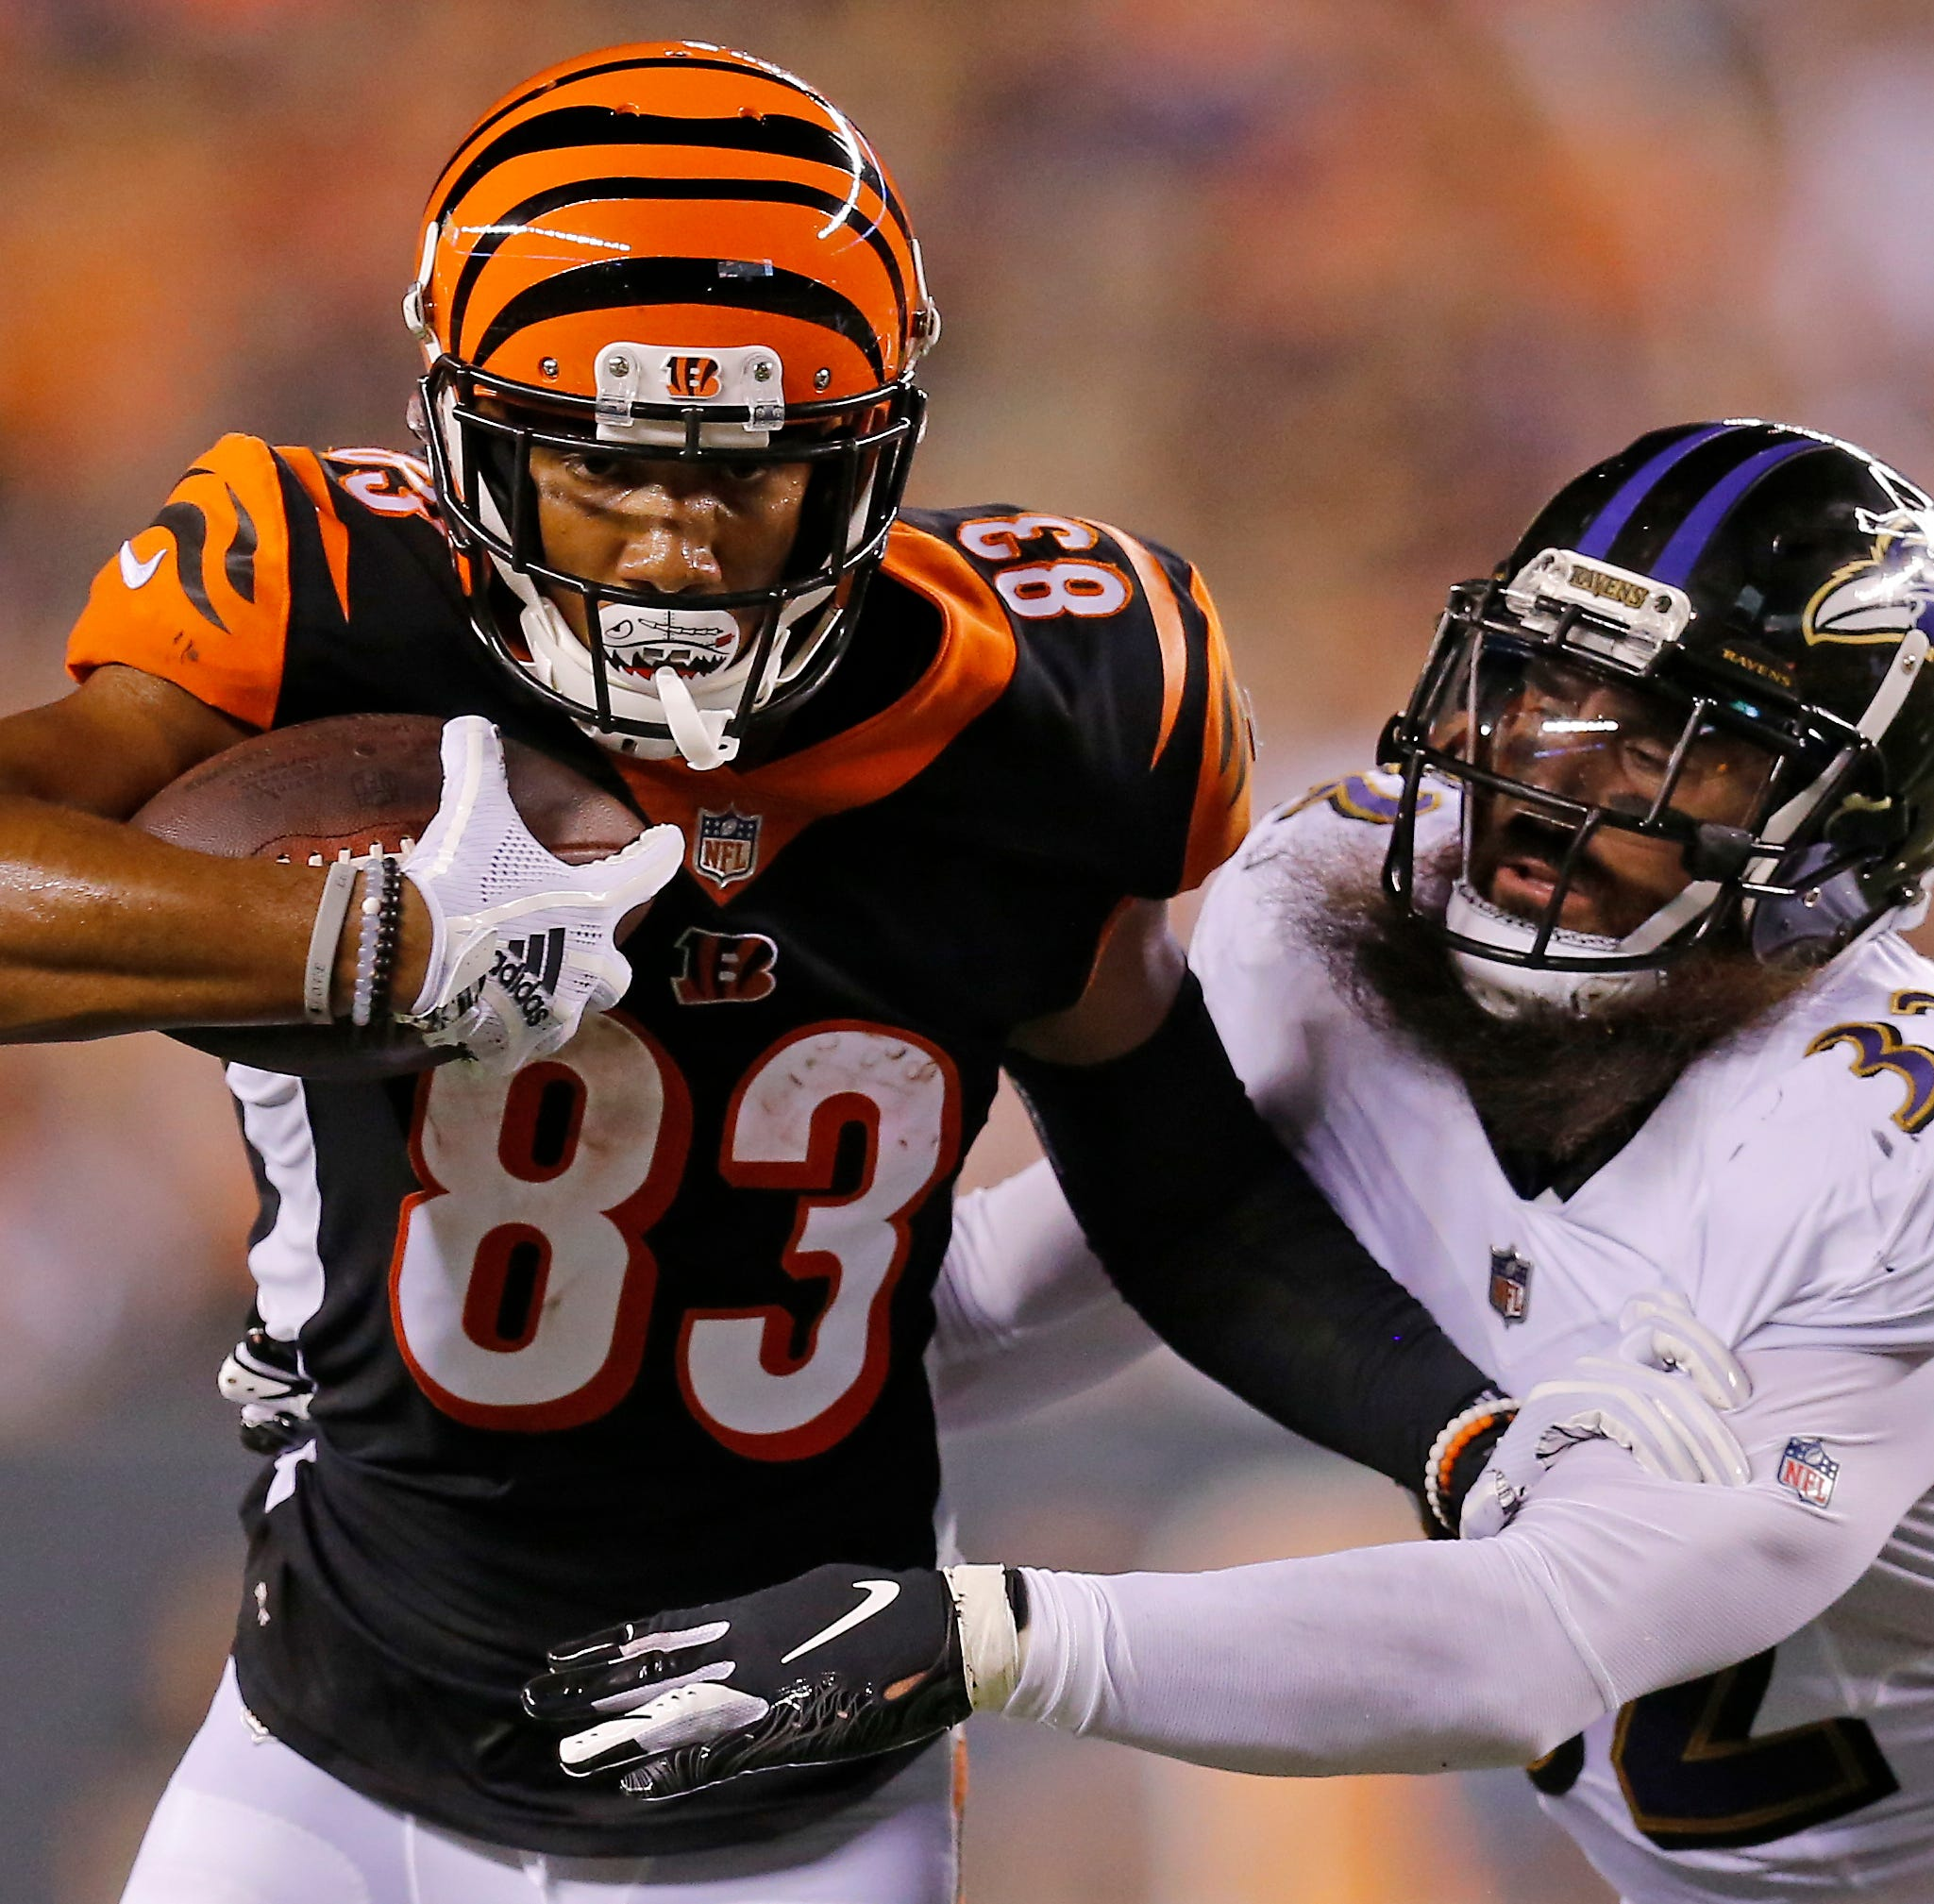 Cincinnati Bengals at Baltimore Ravens: TV, odds, history, uniforms and more